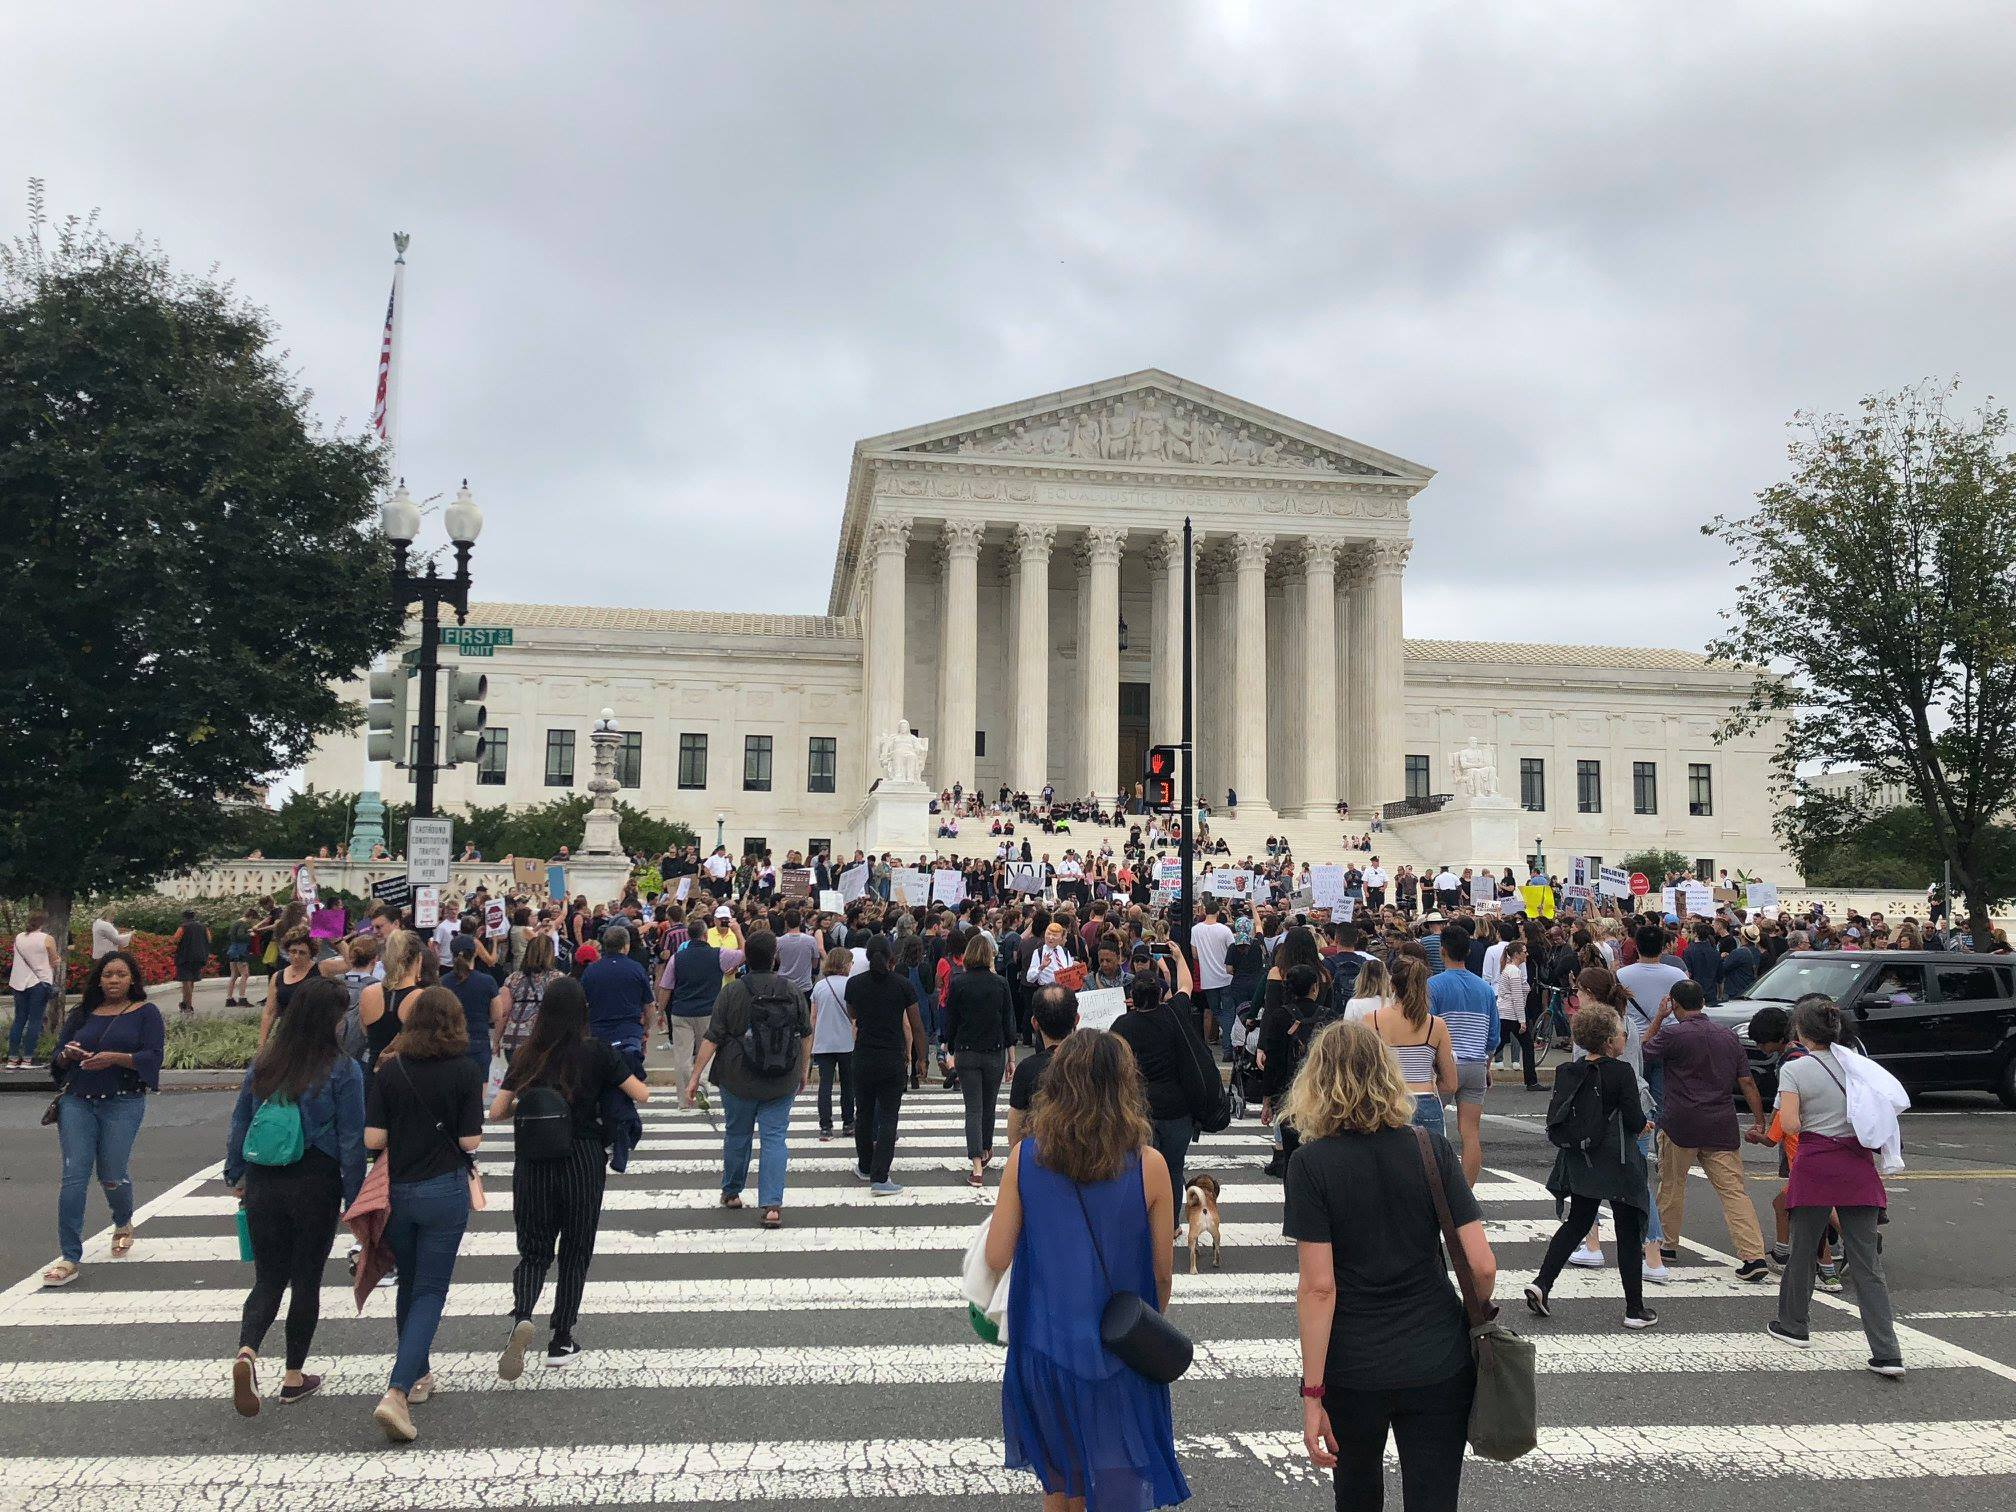 Supreme Court Of The United States 10/6/18. Photo by Scott Burstein. Used with permission.